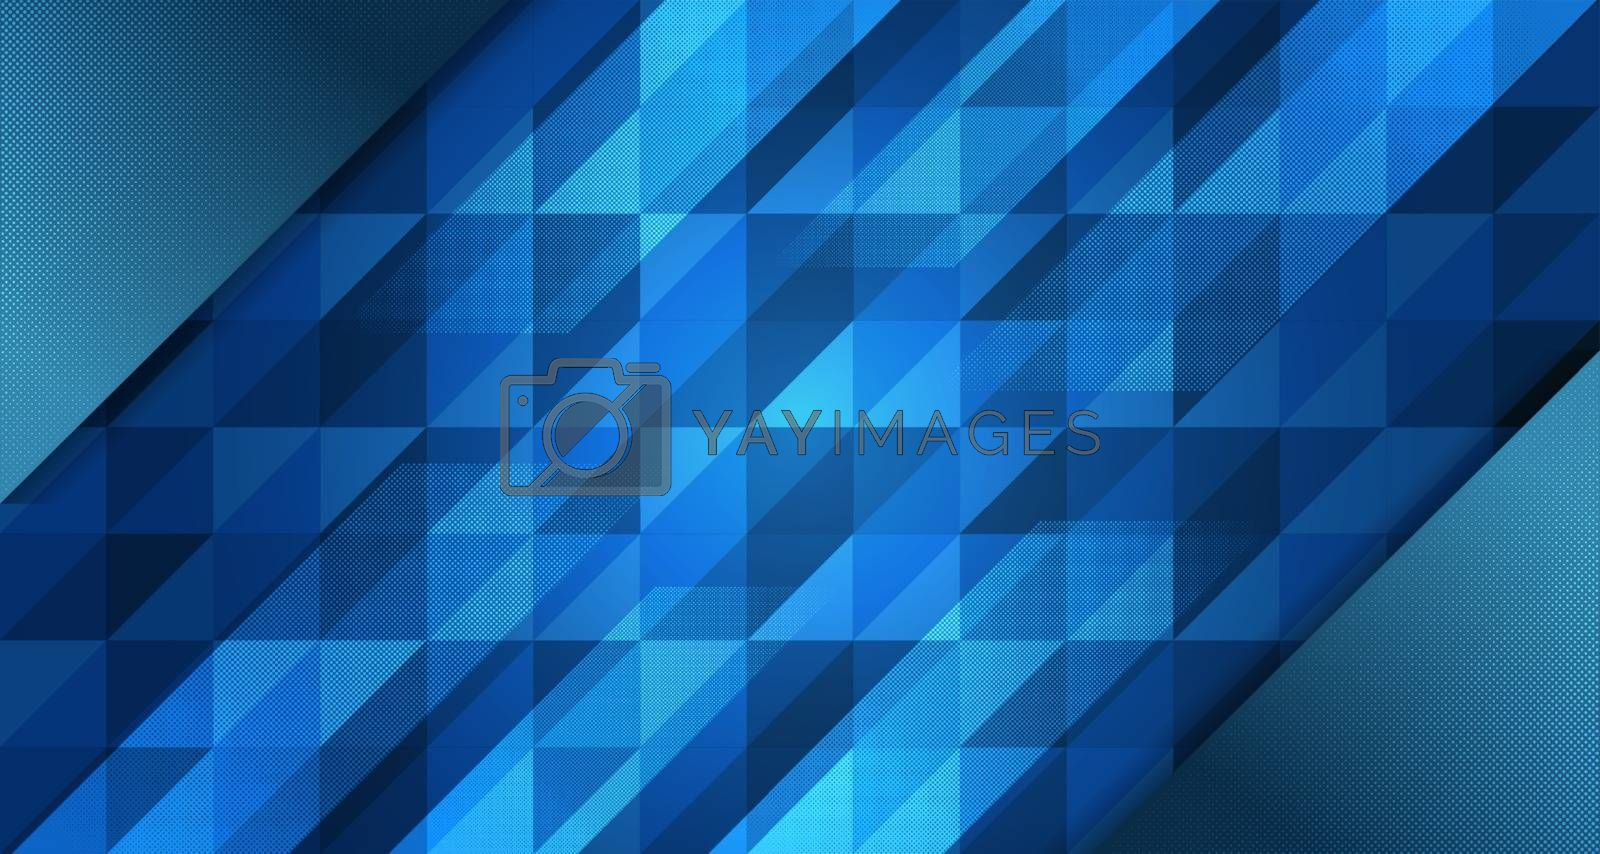 Abstract blue background gradient design with geometric by Zeedoherty